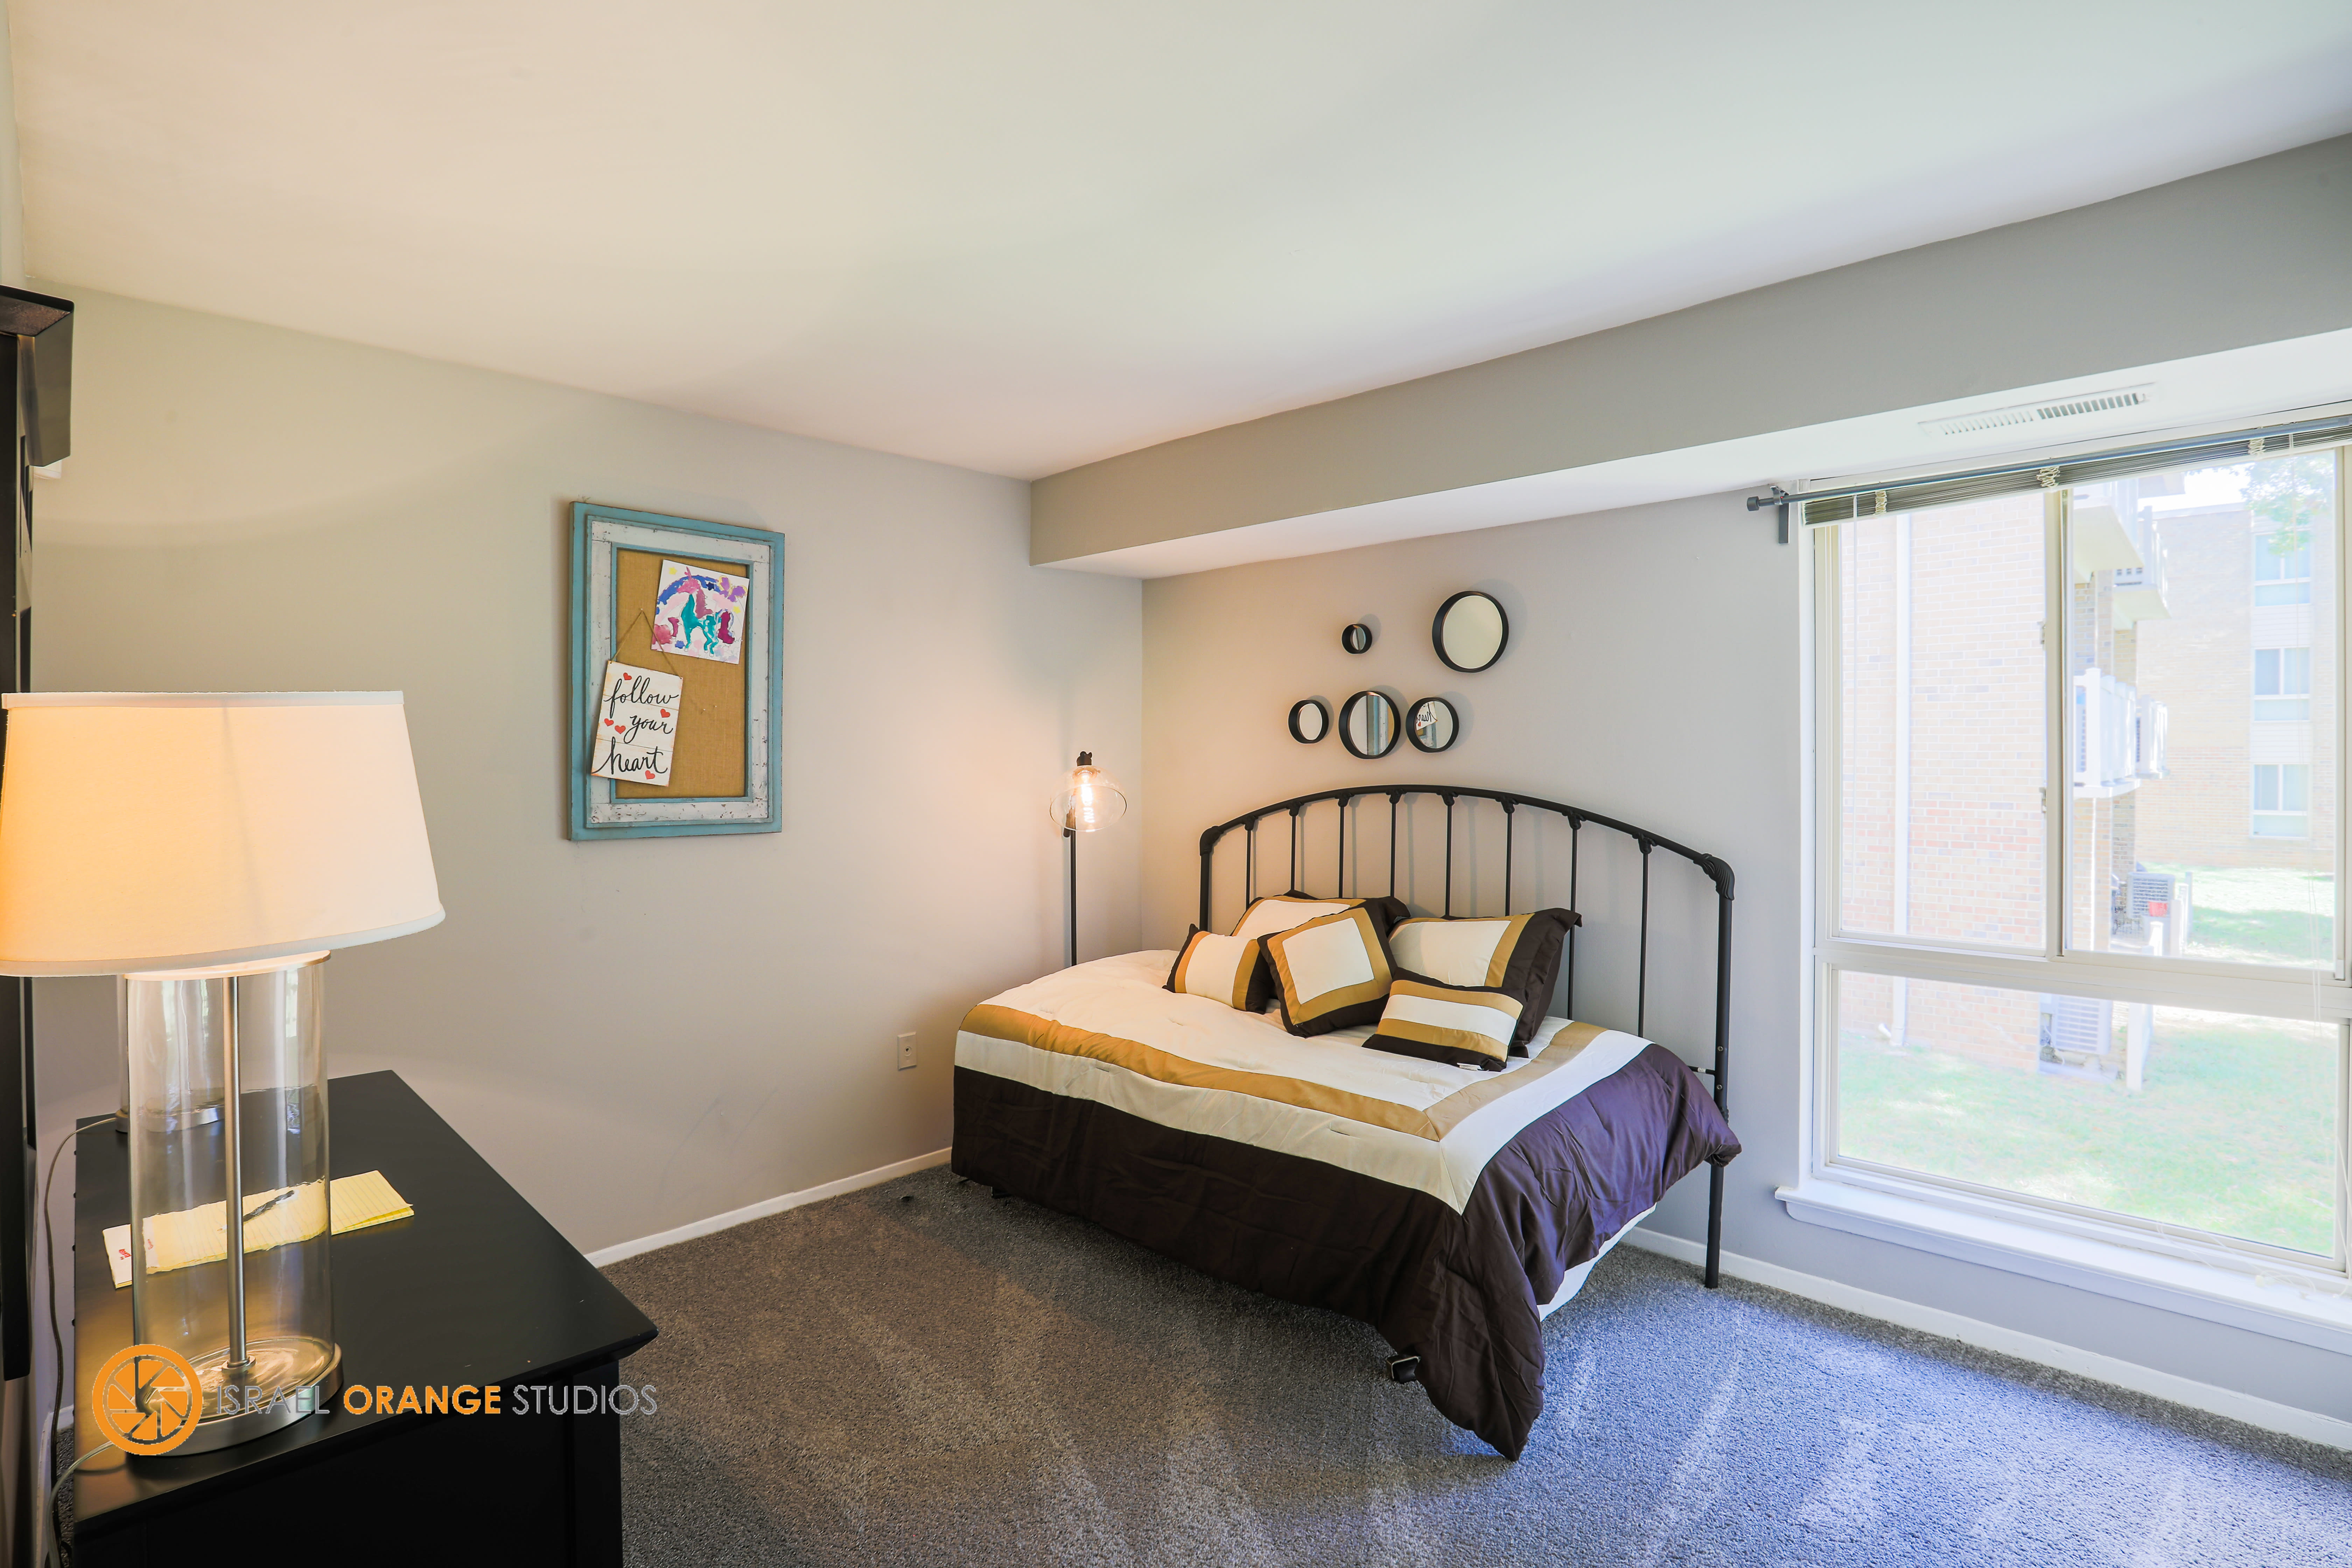 Bedroom next to a large window at The Glendale Residence in Lanham, Maryland